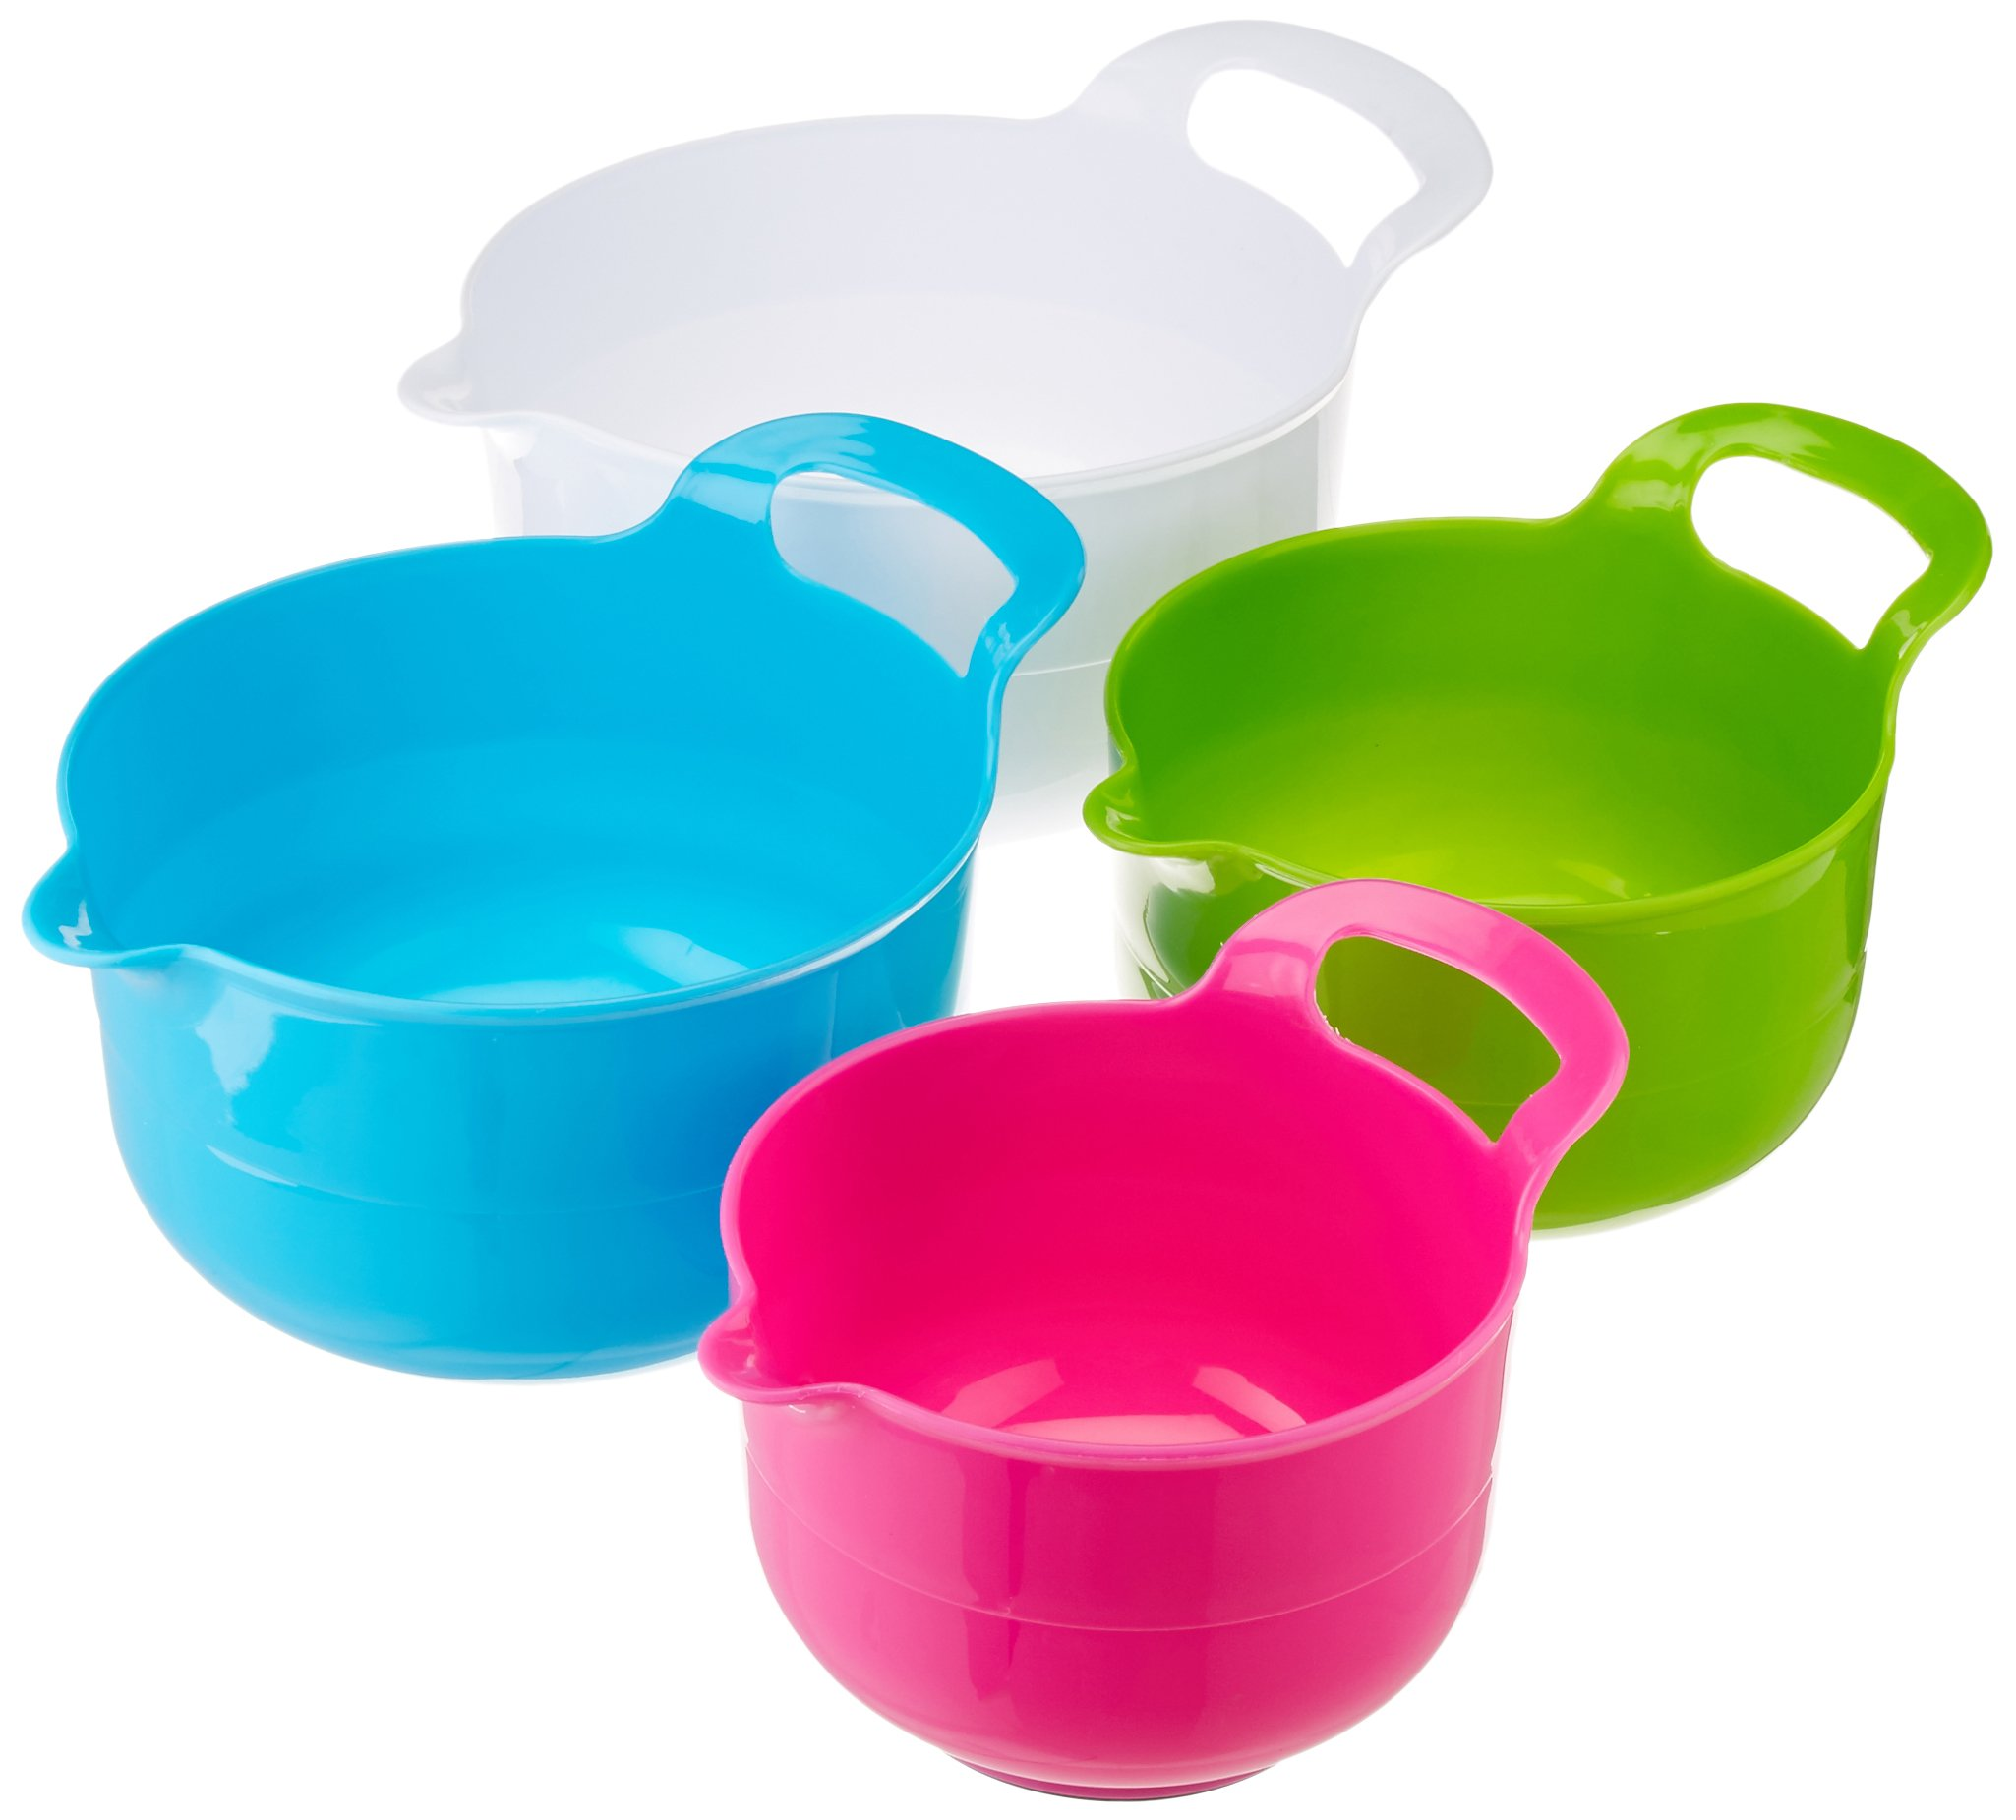 Gourmet Home Products 136744 Polypropylene Batter Bowl Set with Non Skid Bottom, 4 Piece, White